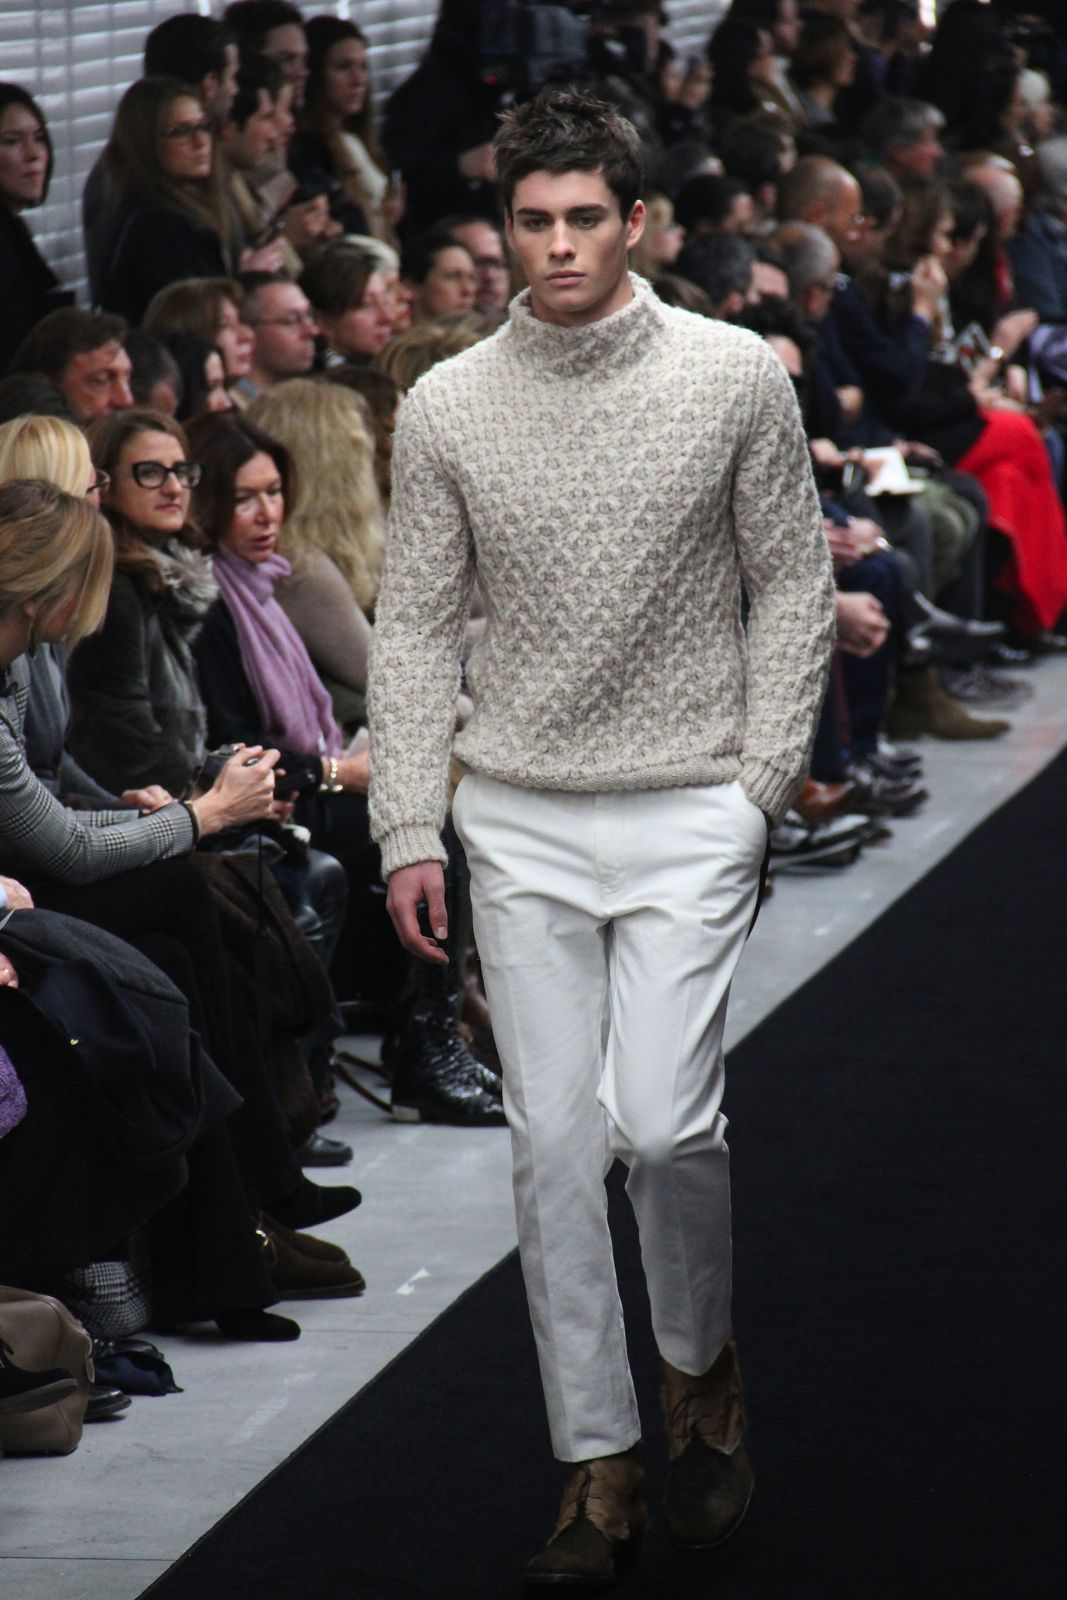 Ermanno Scervino Fall Winter 2012-13 Men's Collection